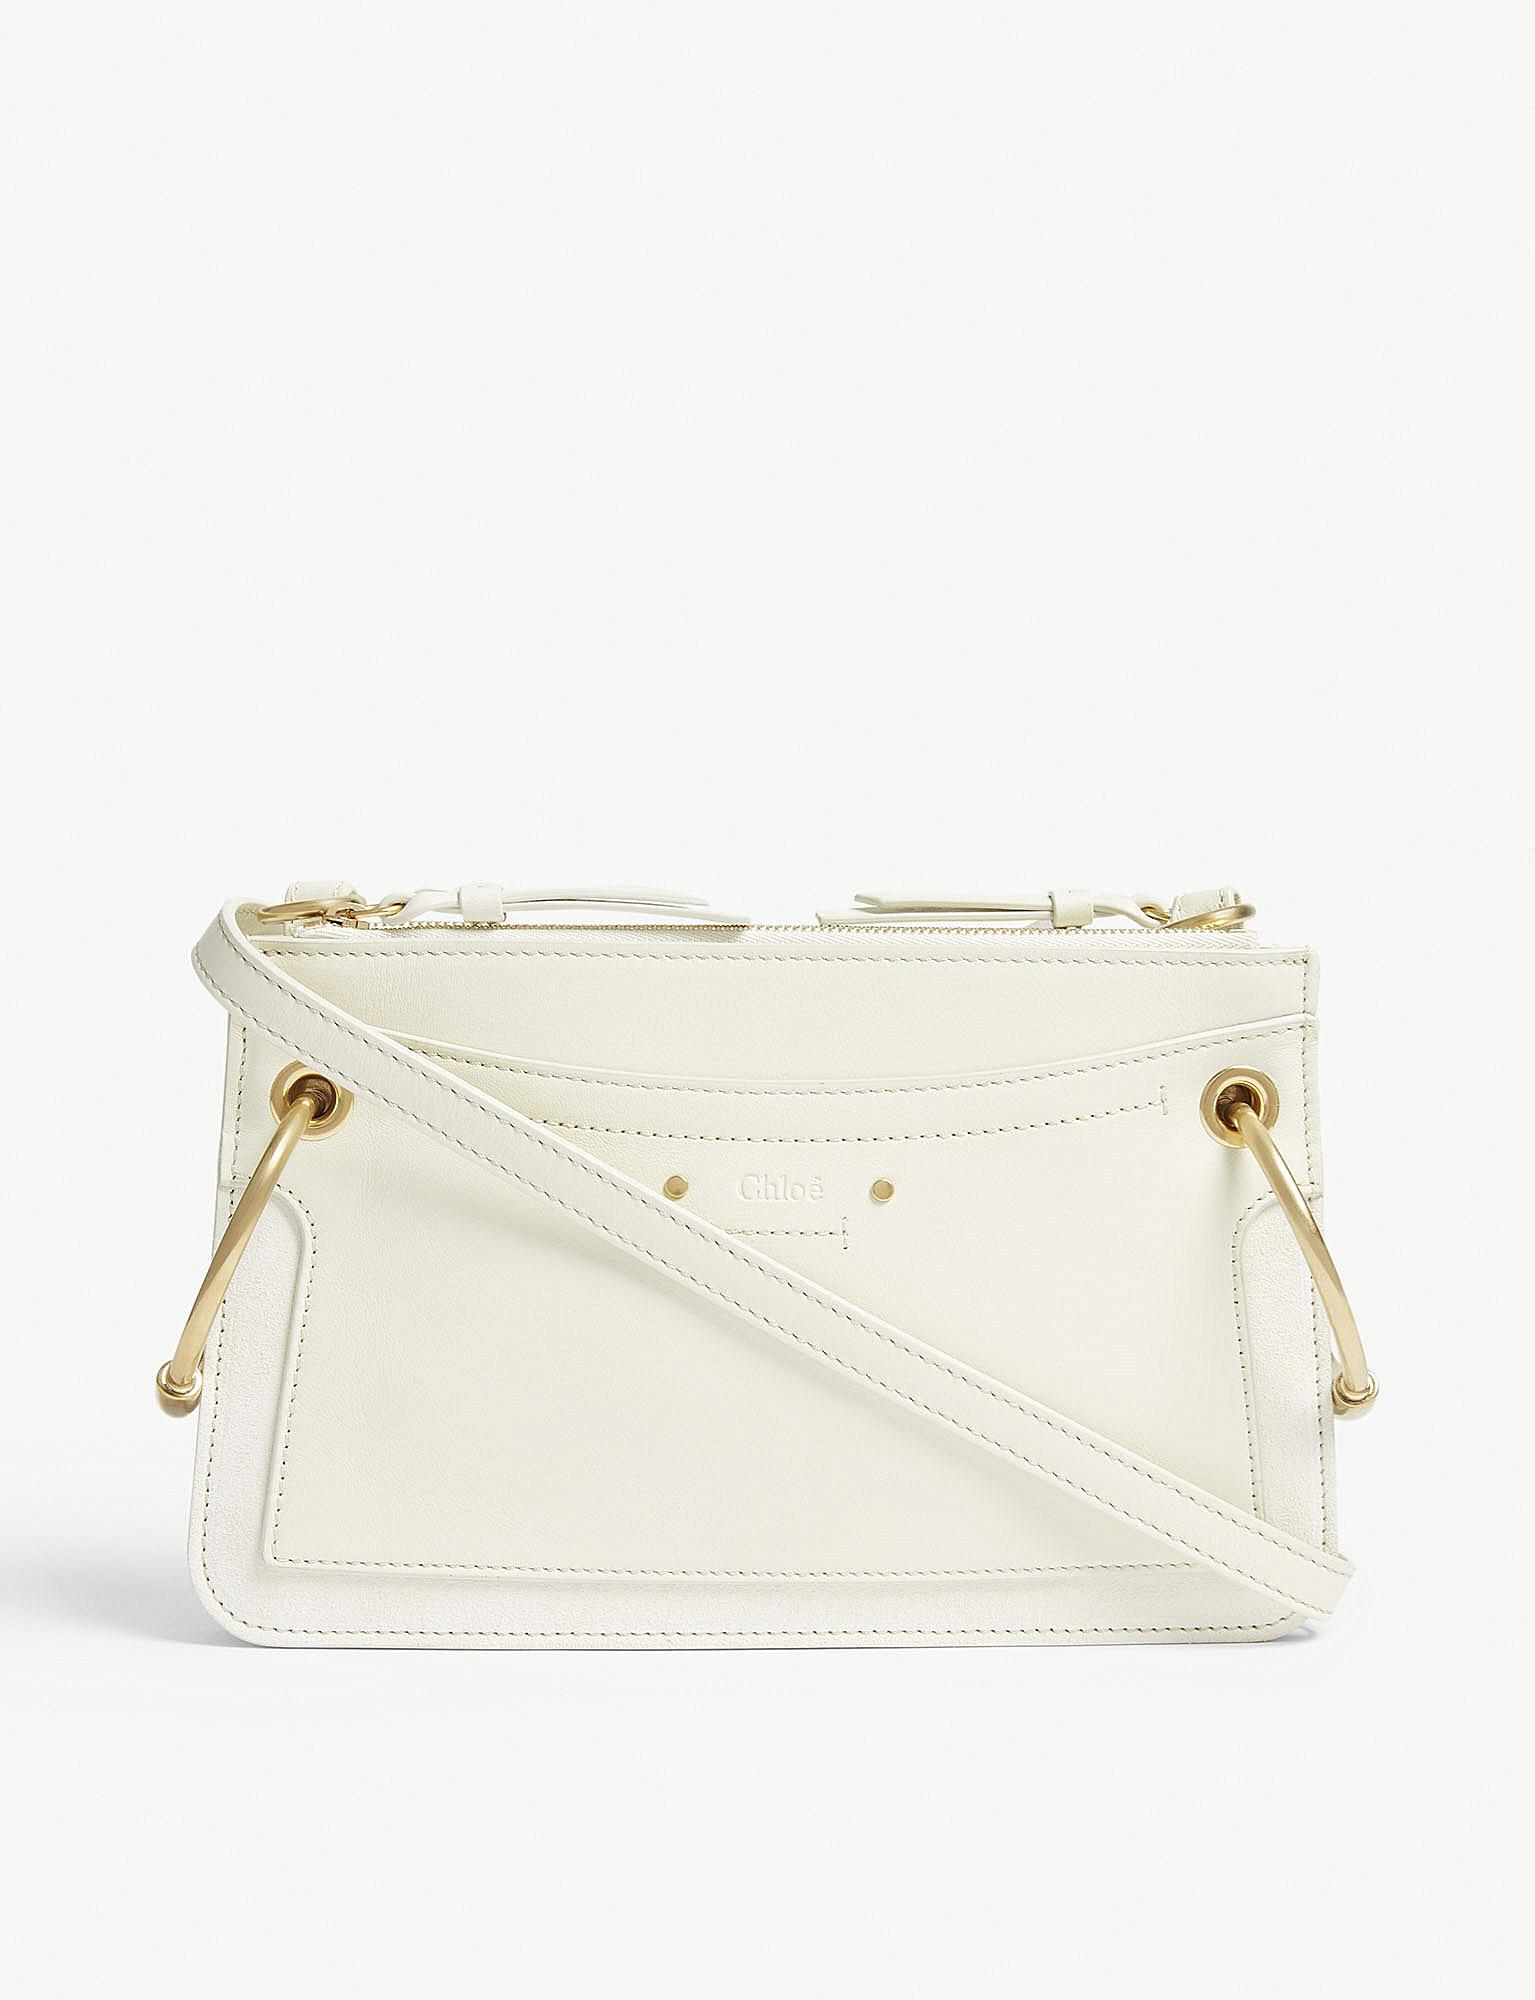 a4940cd13c6 Lyst - Chloé Natural White Roy Mini Leather Shoulder Bag in Natural